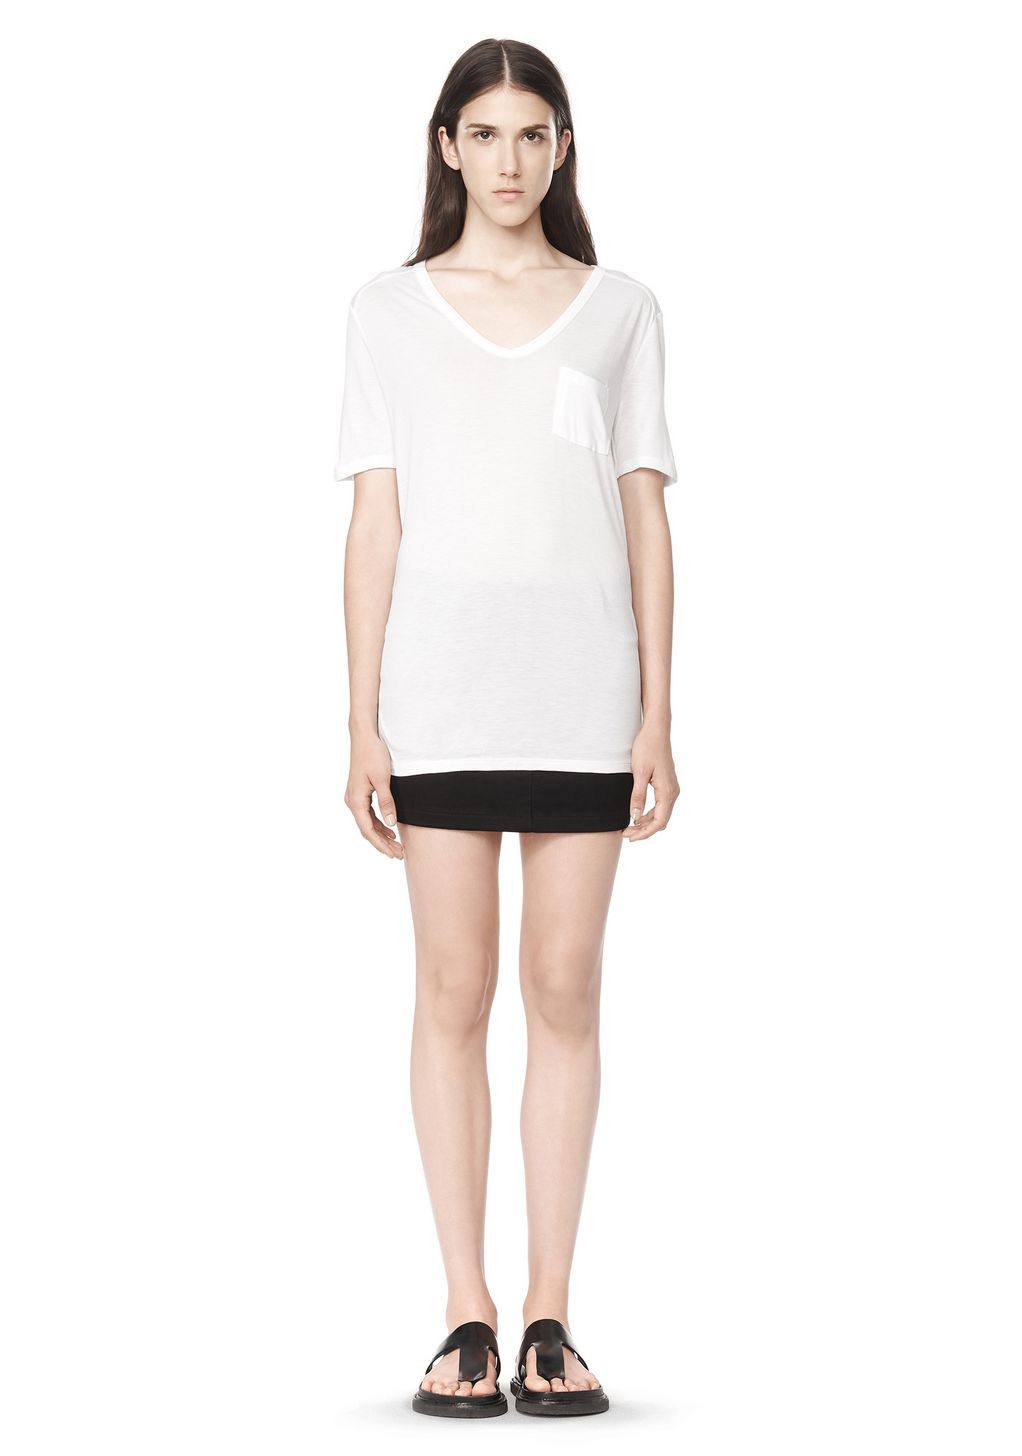 Alexander wang classic tee with pocket short sleeve t for Alexander wang t shirts